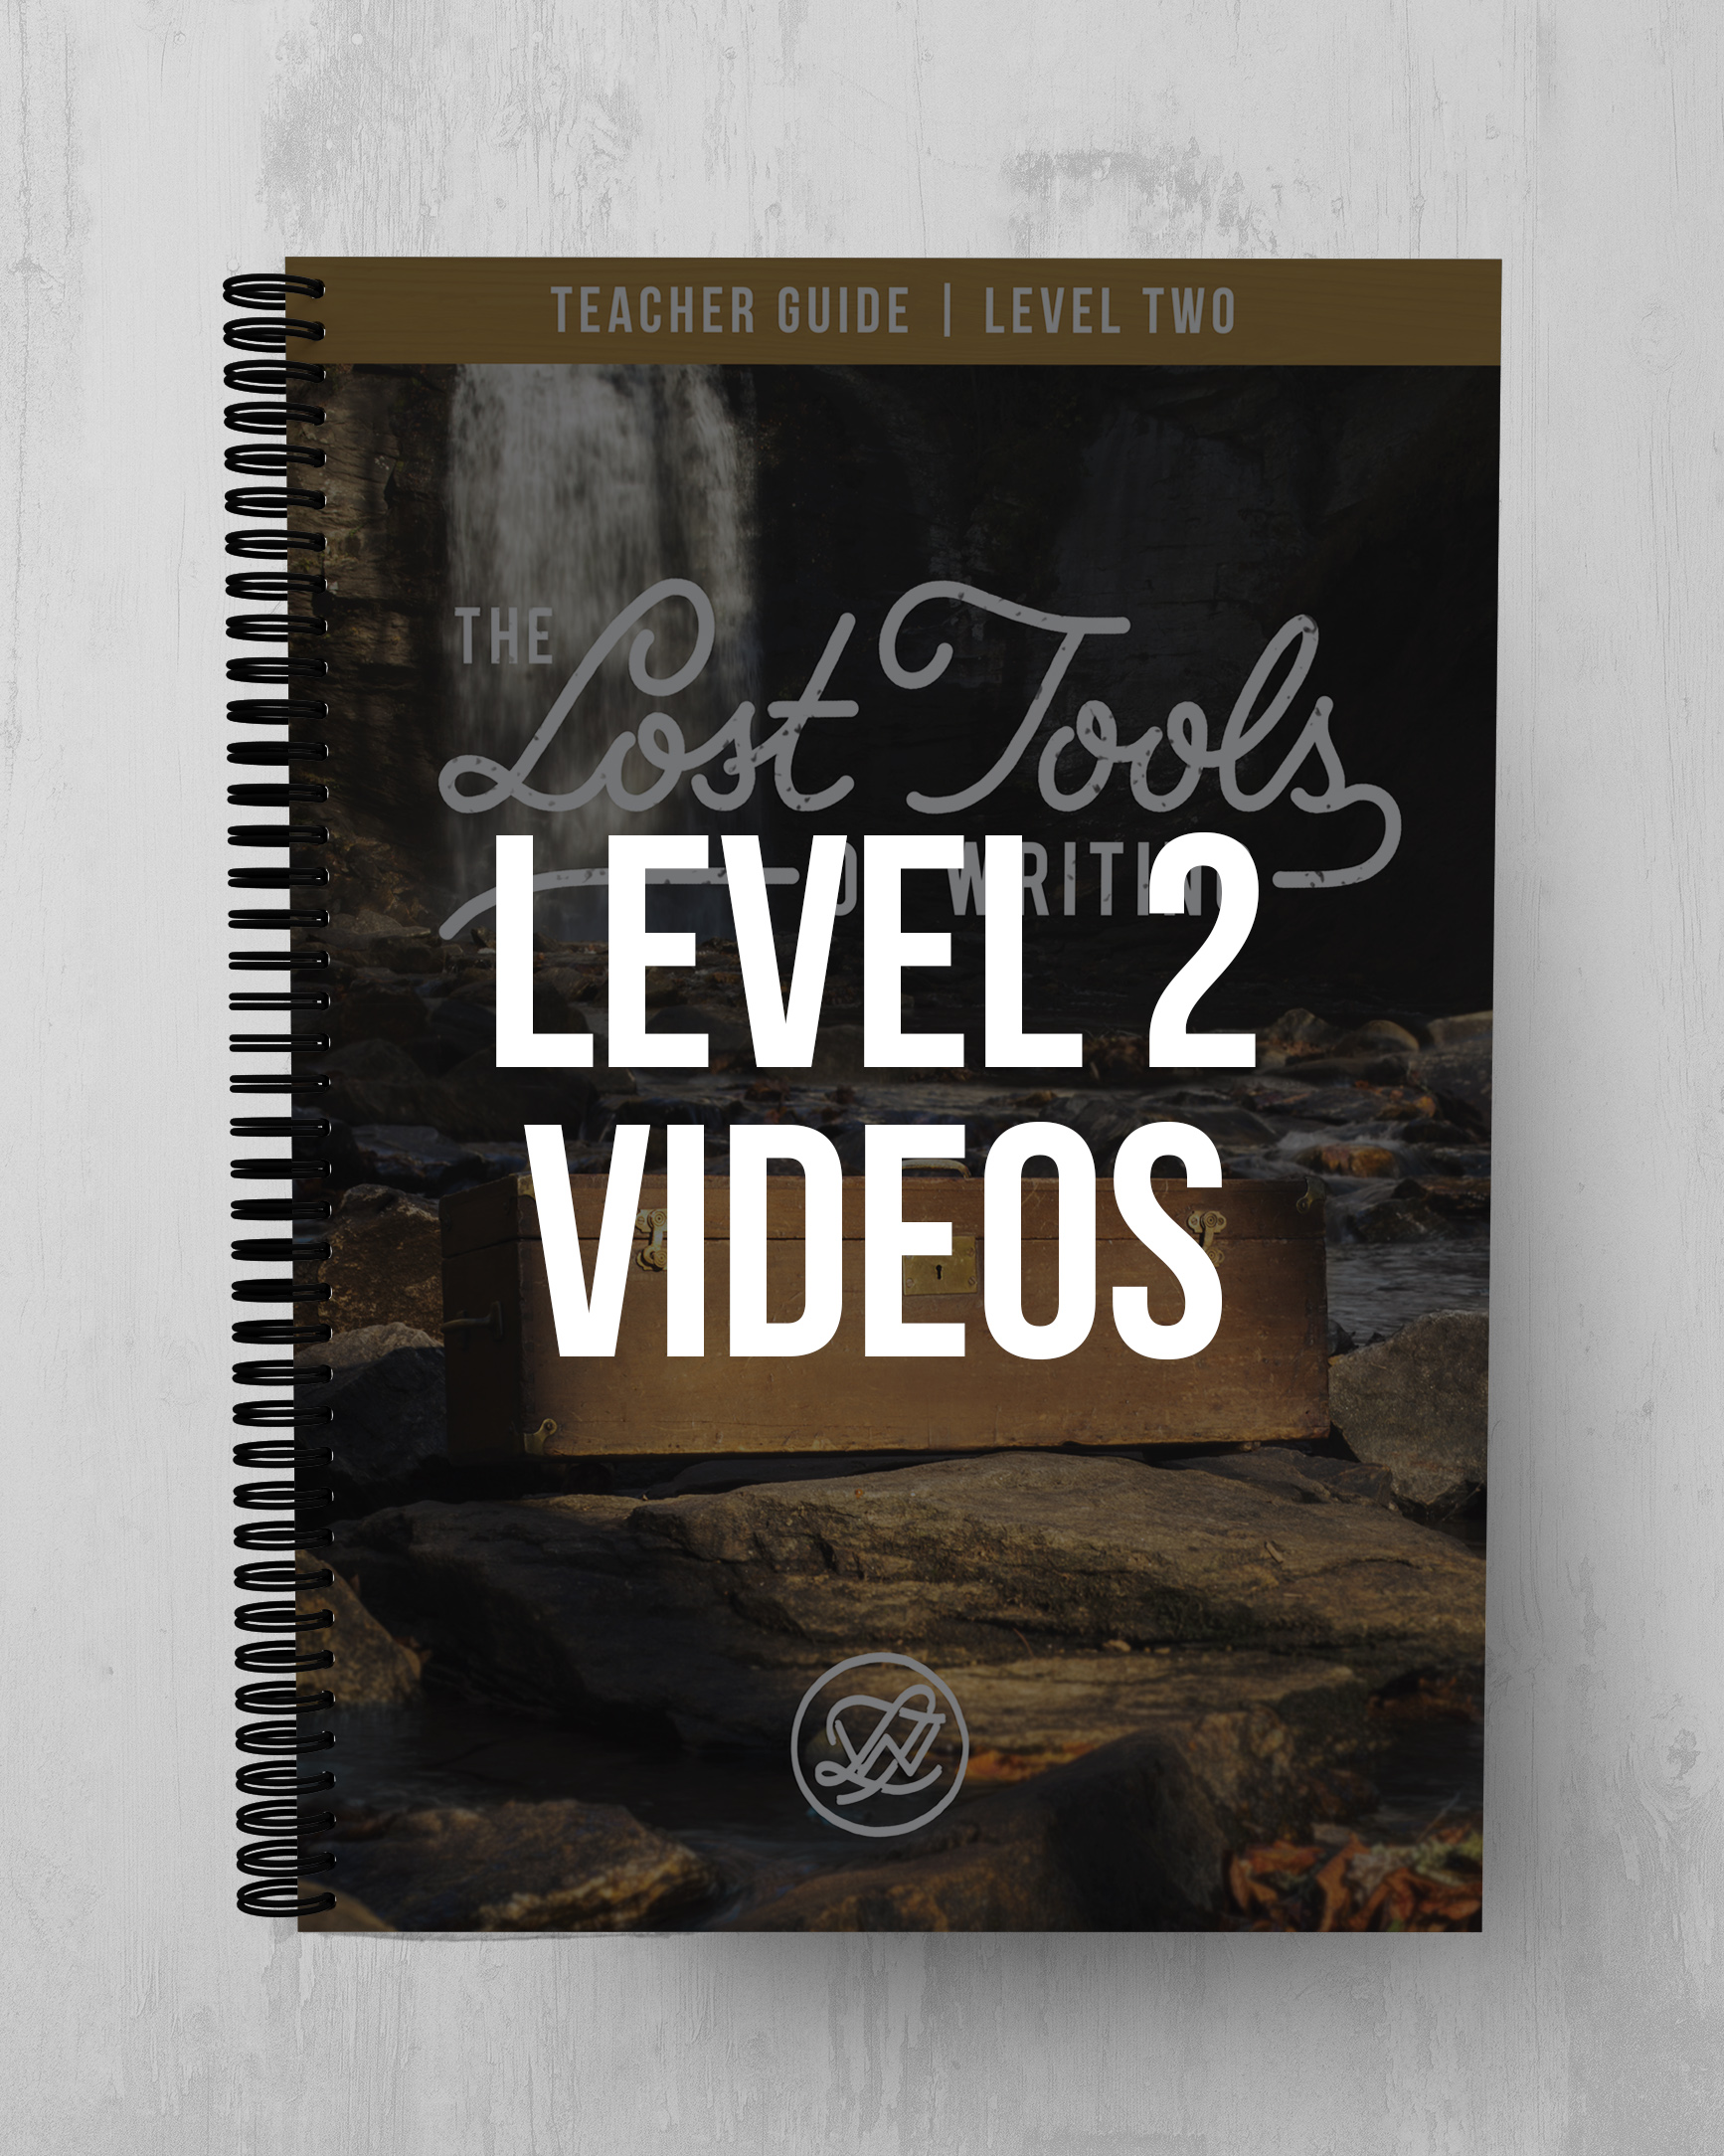 Lost Tools of Writing Level Two Videos Online Instructional Video Subscription